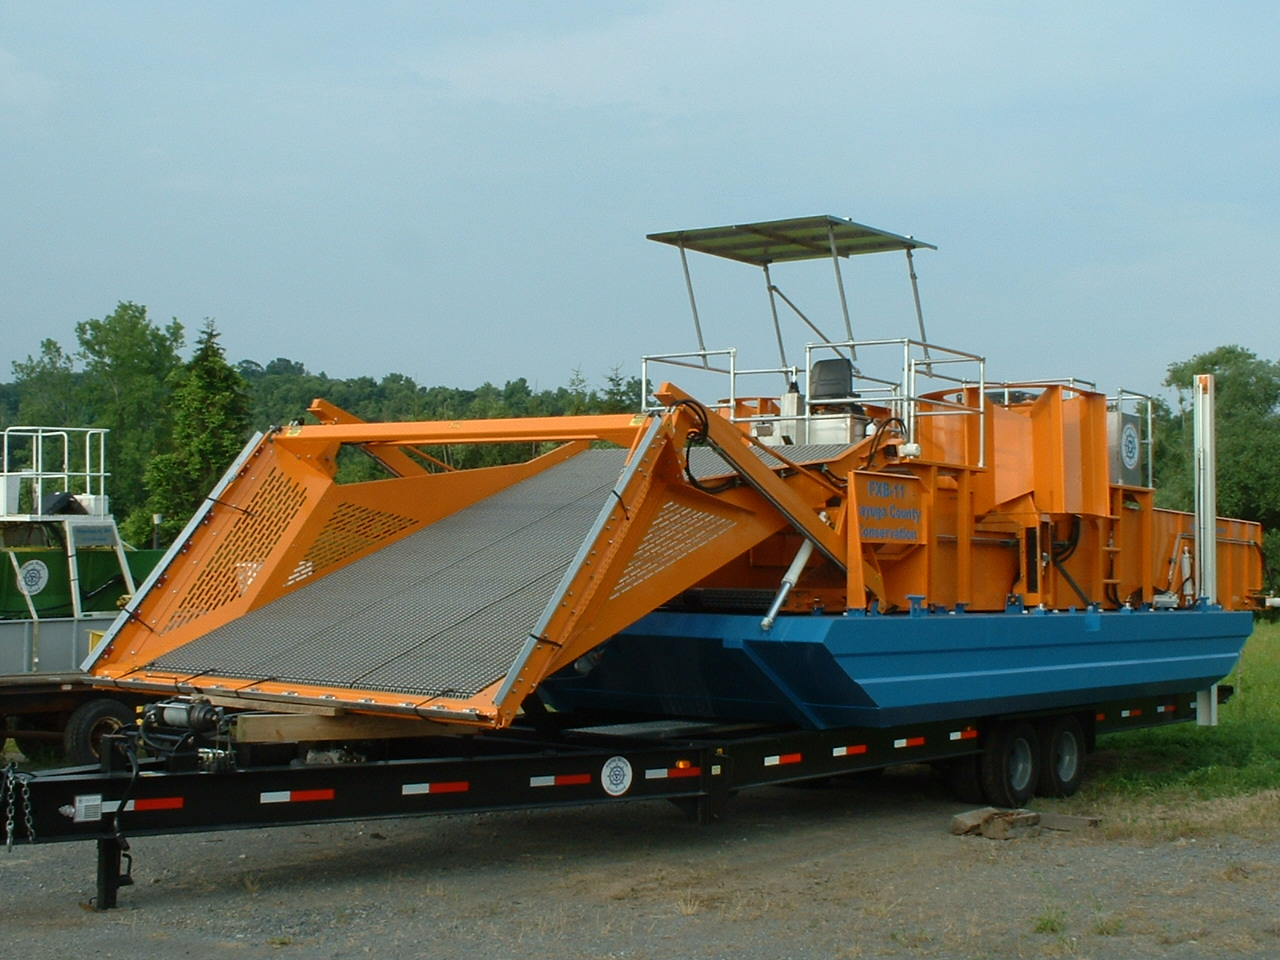 Alphaboats FX-11 Waterweed Harvester on an Alphaboats Transport Trailer